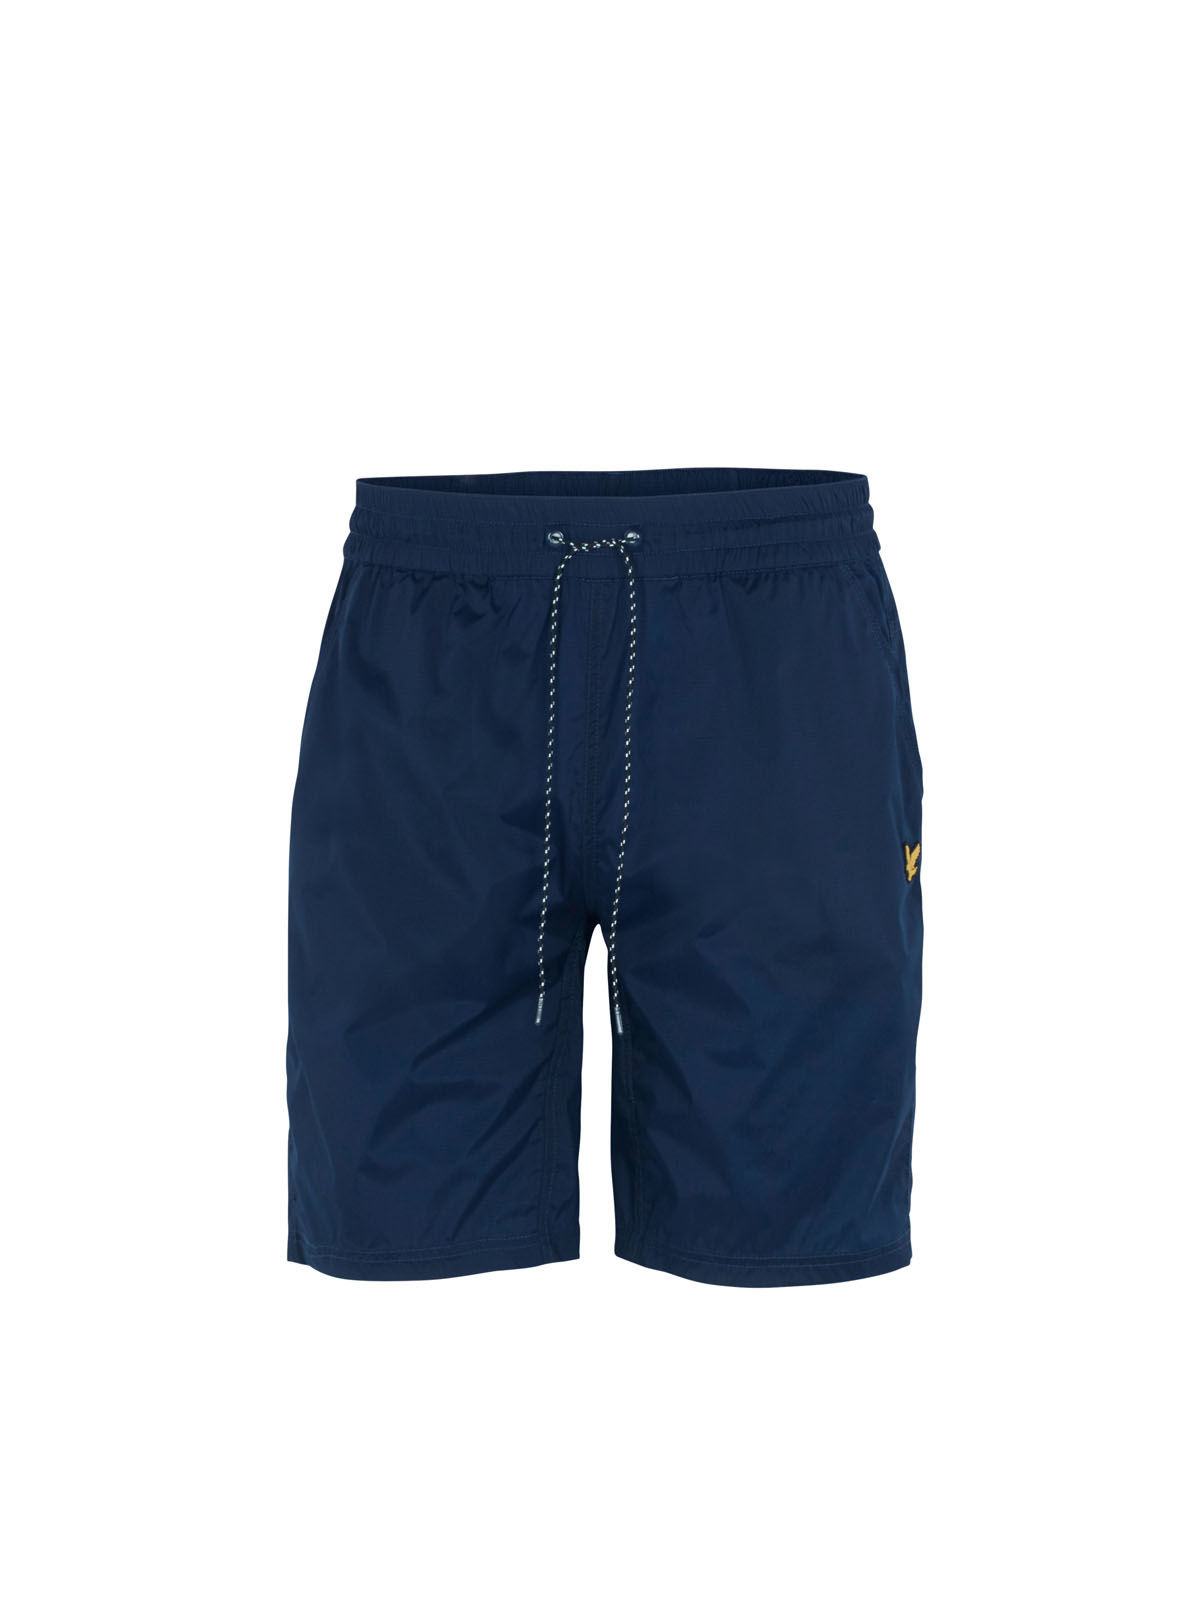 Lyle and Scott Navy Christie Fitness Running Shorts